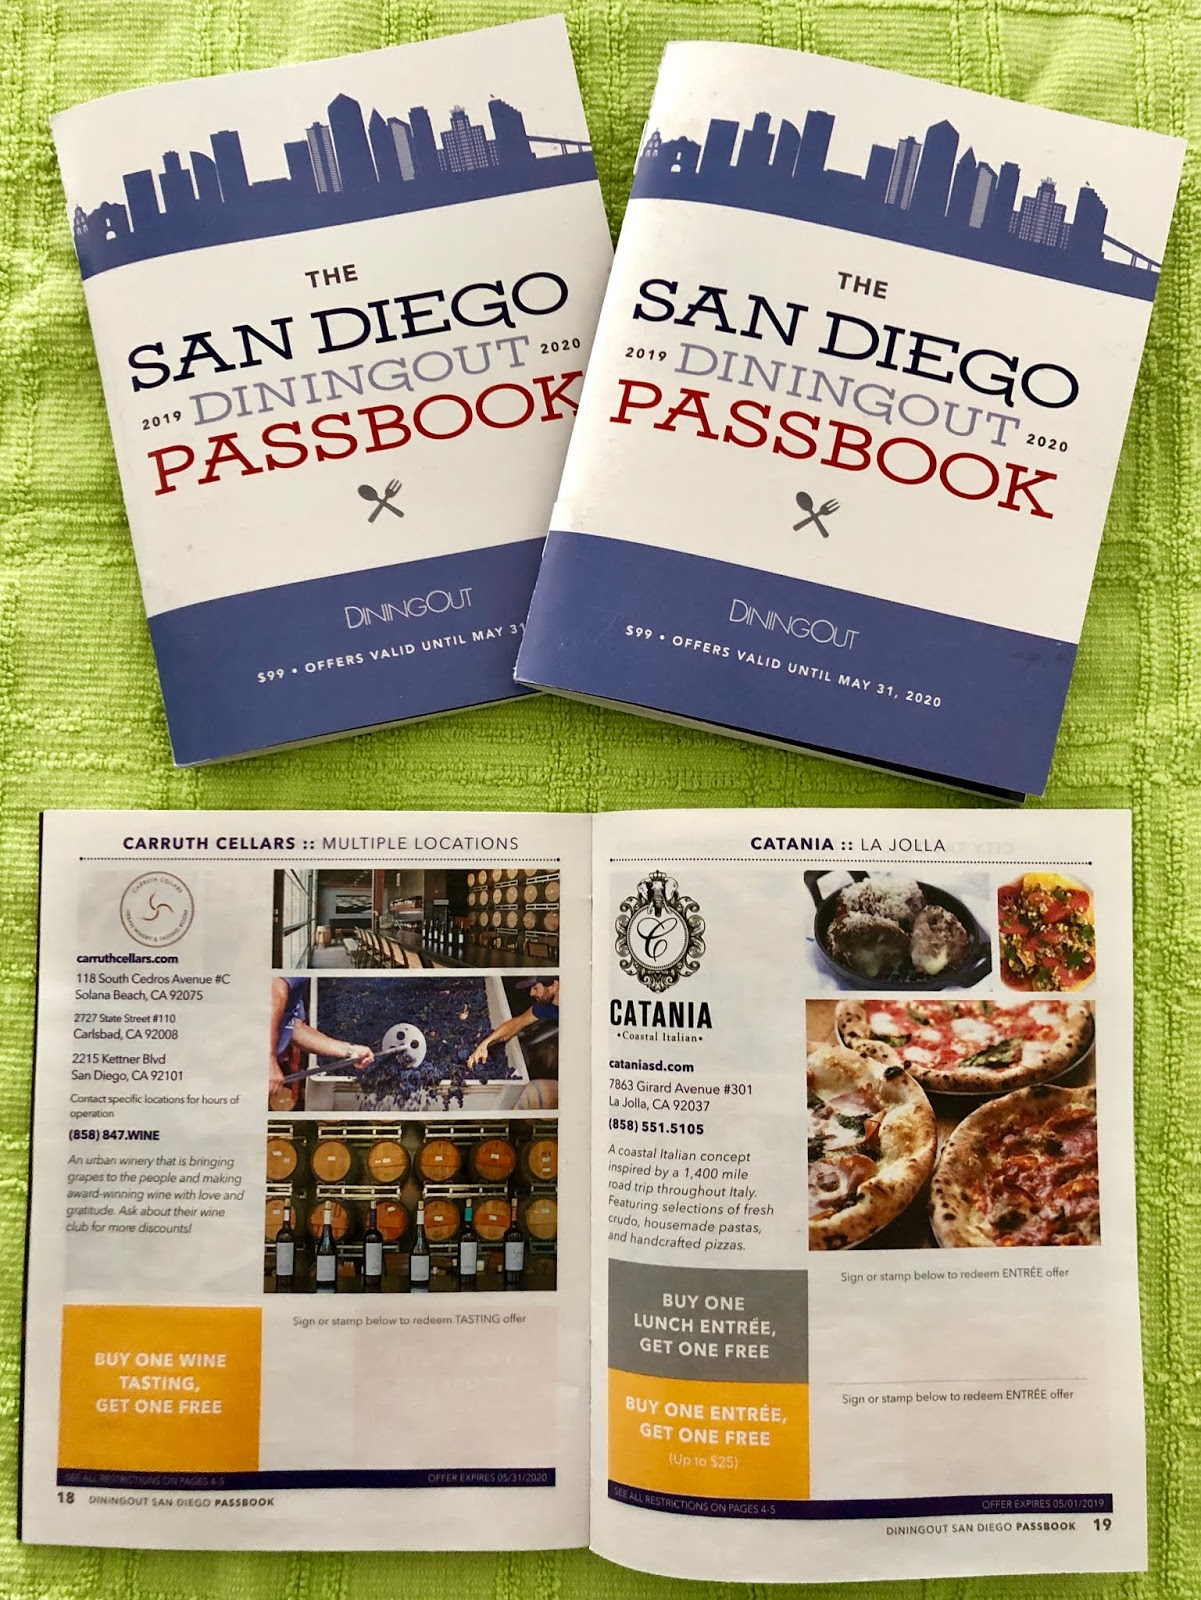 Sandiegoville Dining Out San Diego Magazine Launches Incredible Book Of 2 For 1 Deals For More Than 80 Of San Diego S Top Restaurants Get The San Diego Dining Out Passbook For Just 39